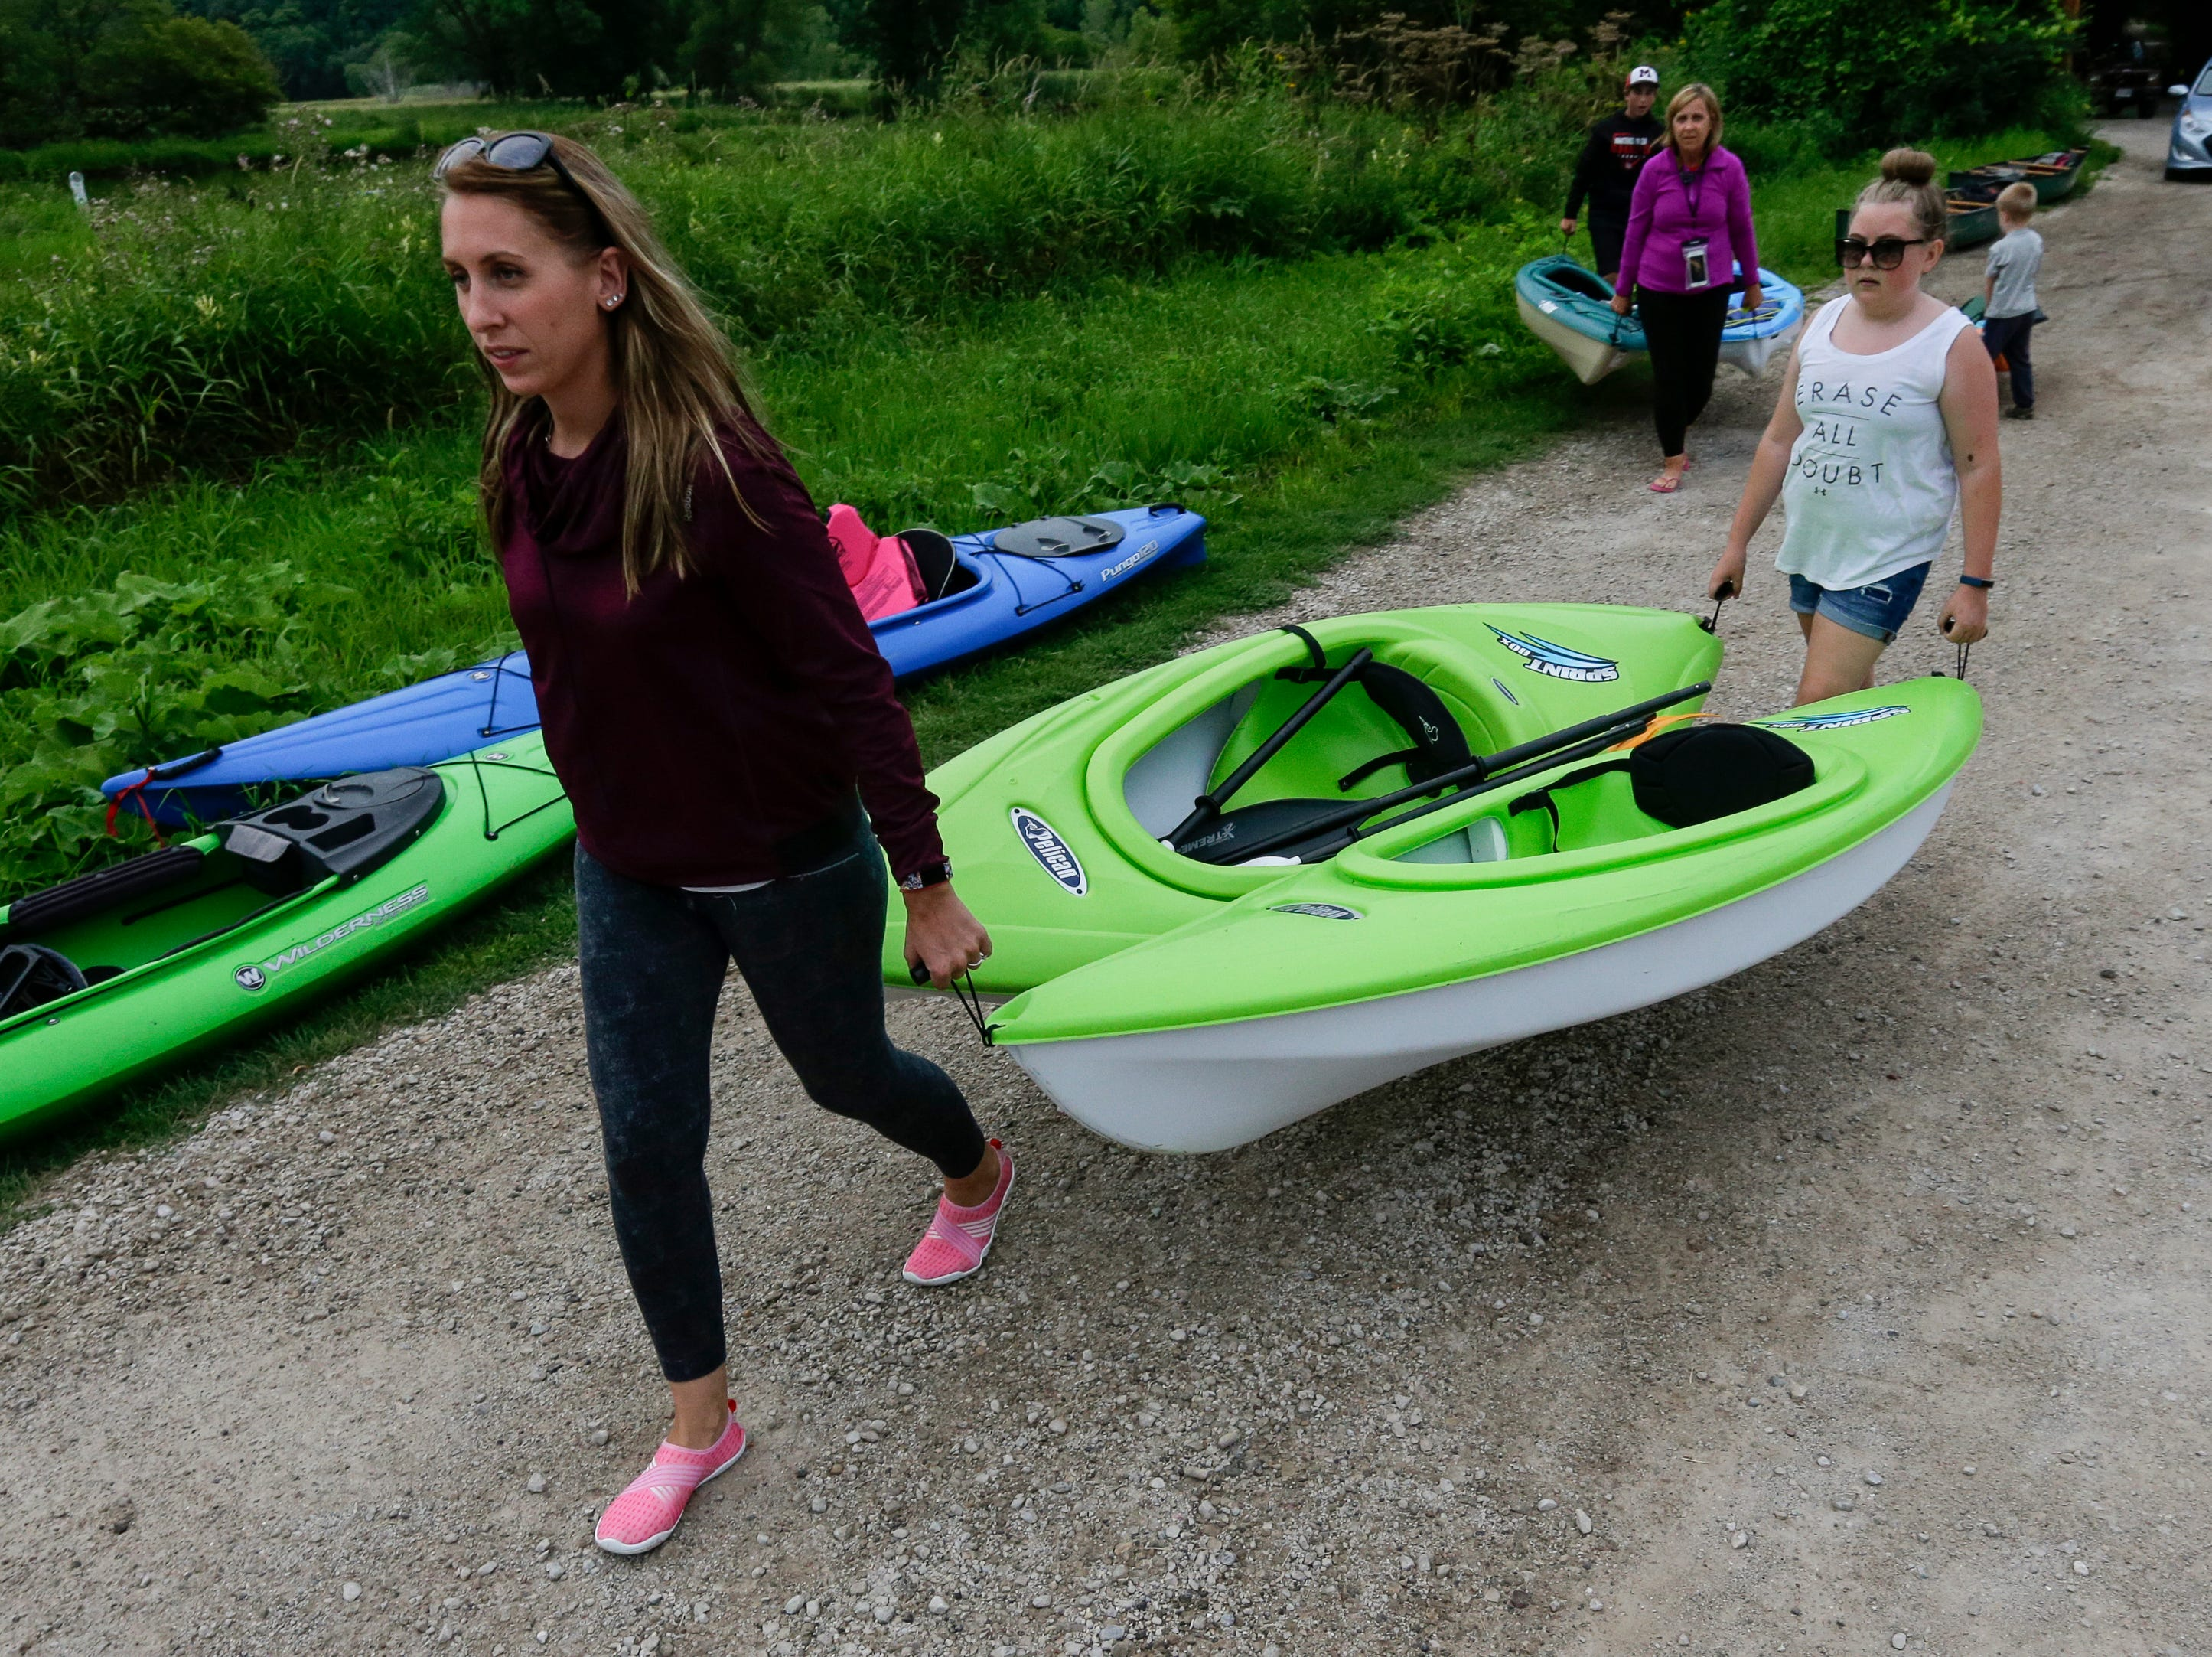 Nicole Zortman and her daughter Hailey, 12, carry their kayaks down to the launch at Lower Henry Schuette Park before a moonlight paddle on the Manitowoc River Friday, July 27, 2018, in Manitowoc, Wis. Josh Clark/USA TODAY NETWORK-Wisconsin